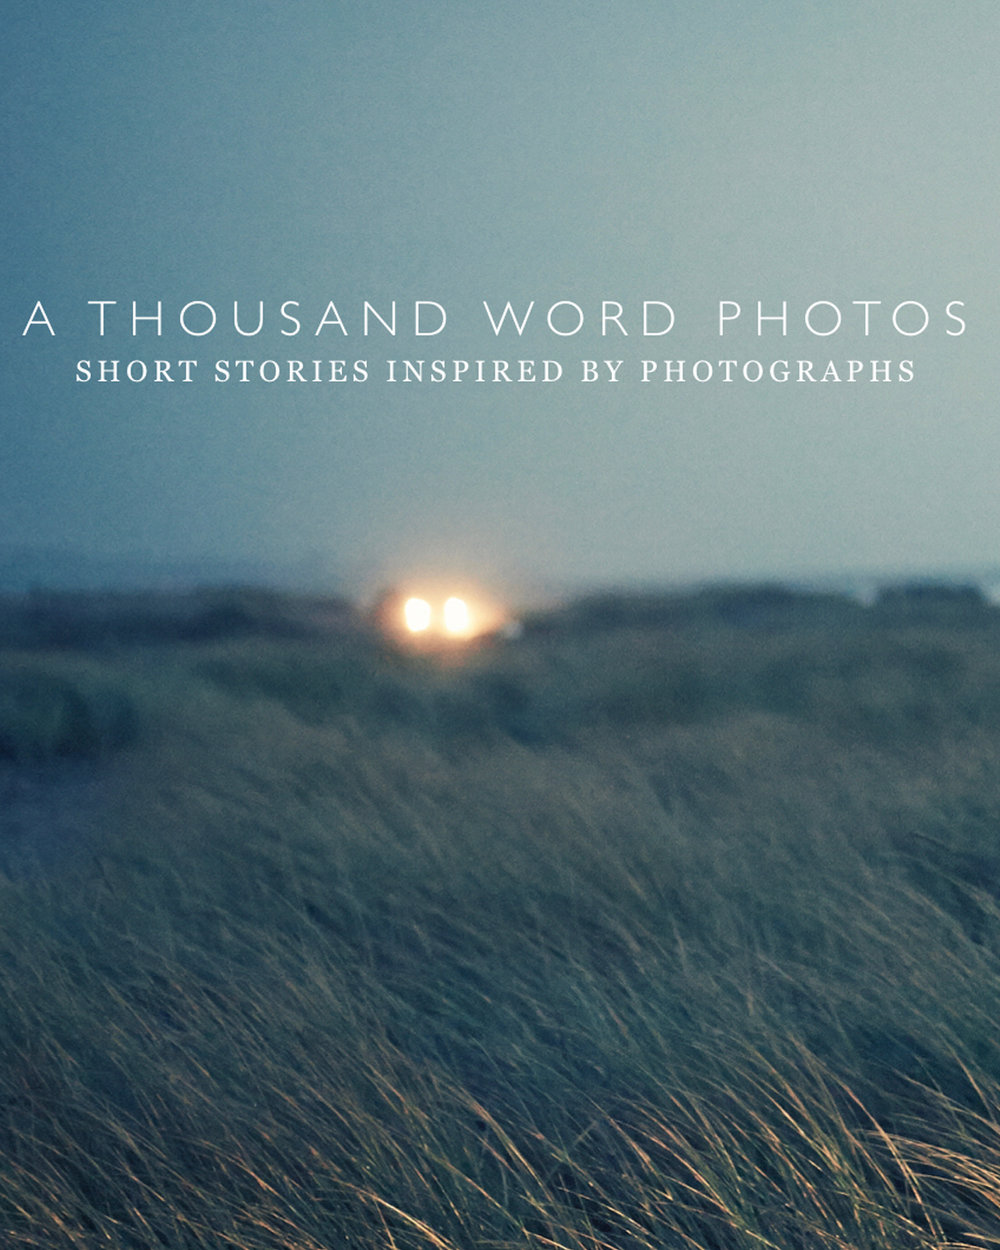 Lunch Time Chat - with A Thousand Word Photos